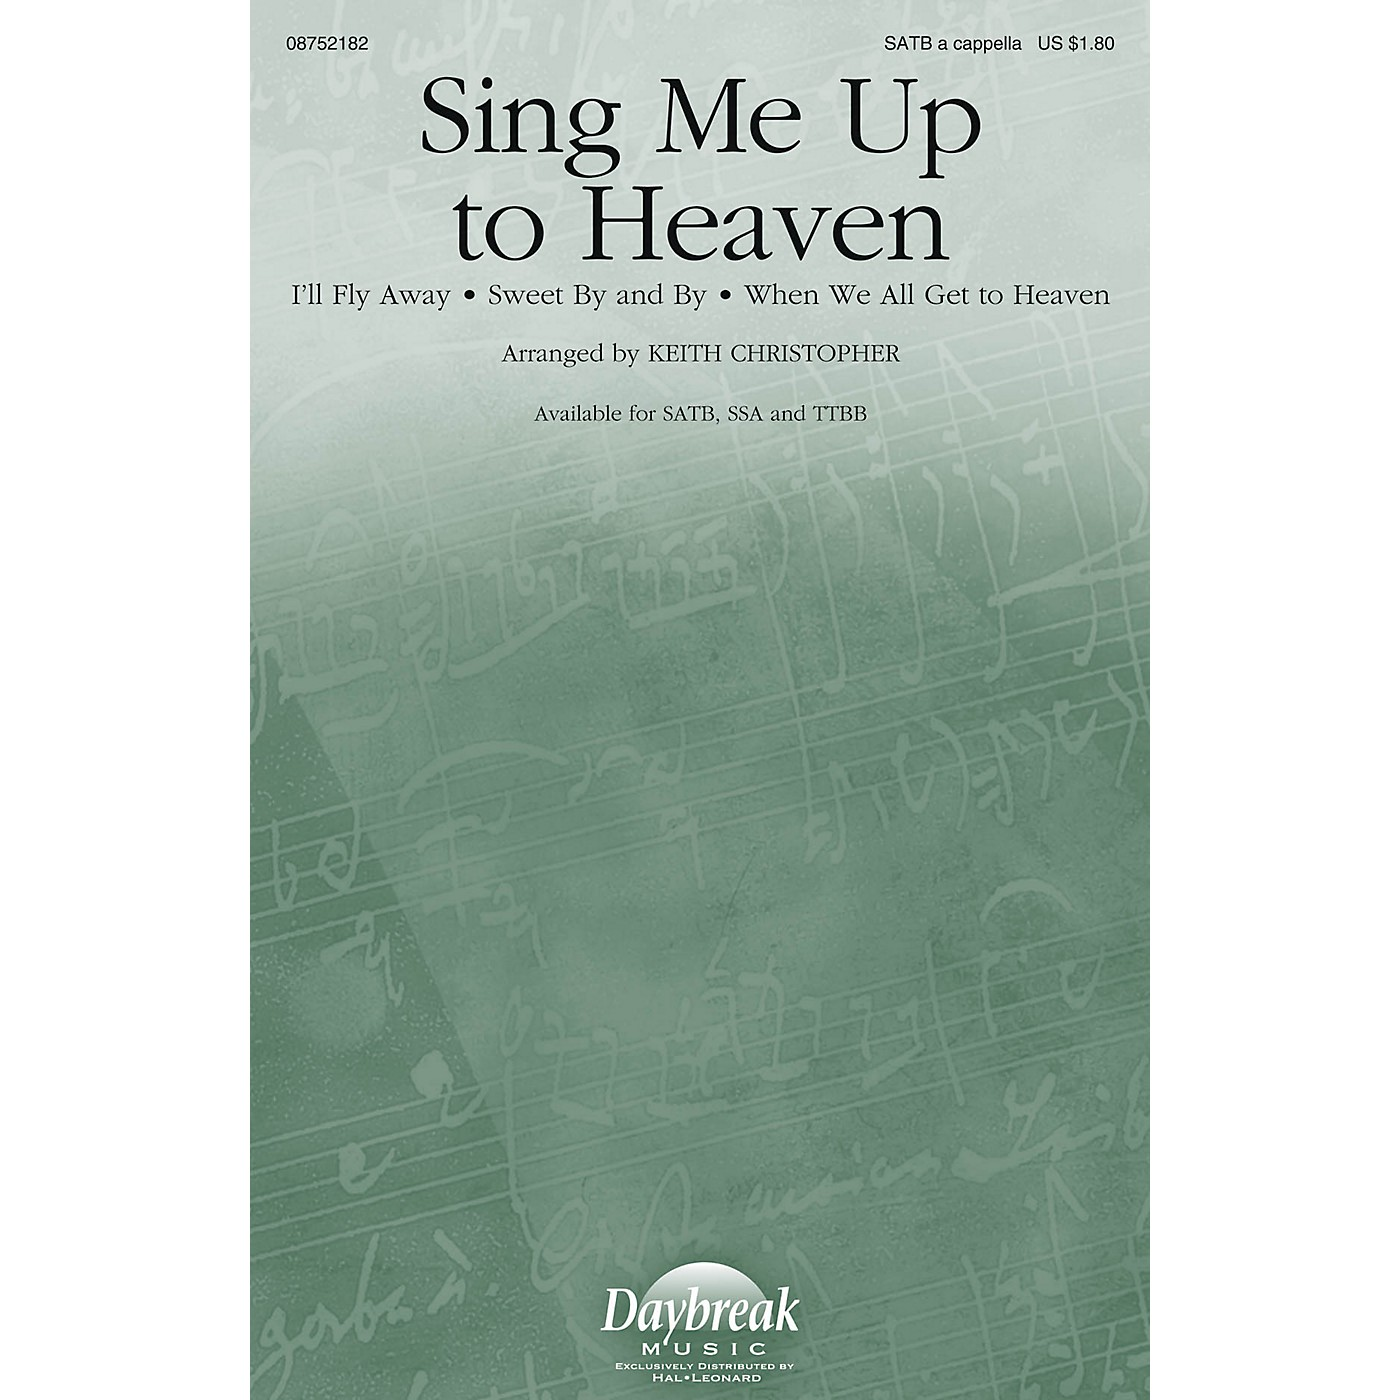 Daybreak Music Sing Me Up to Heaven SSA A Cappella Arranged by Keith Christopher thumbnail